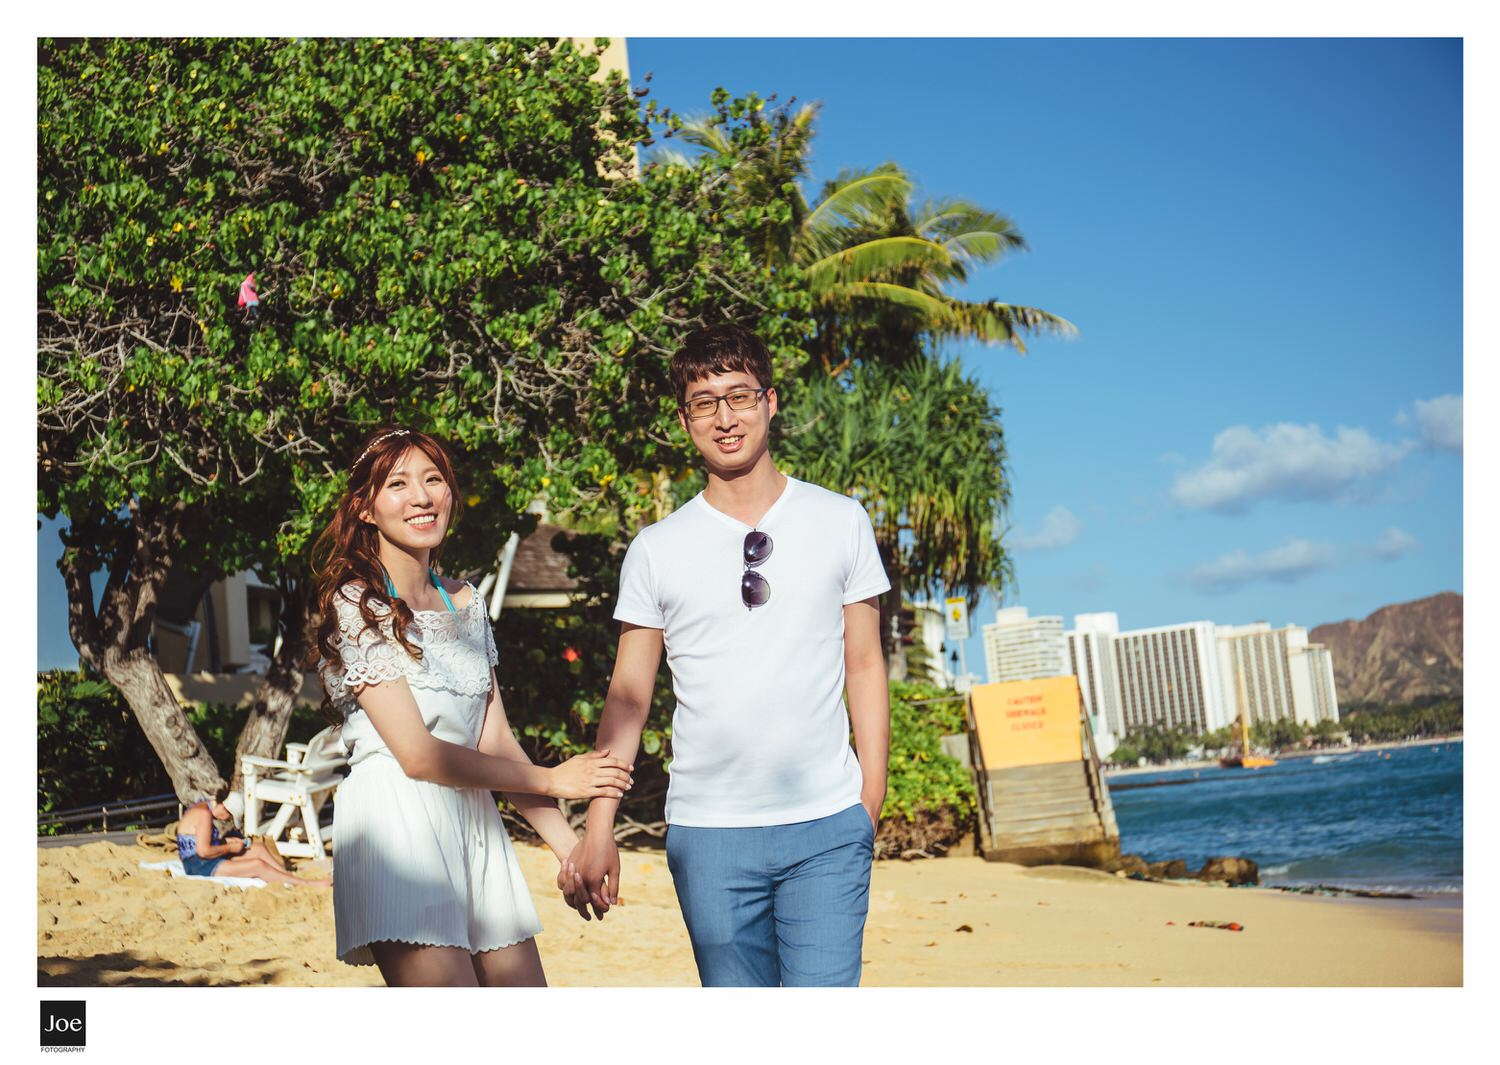 115-waikiki-beach-hawaii-pre-wedding-tiffany-tony-joe-fotography.jpg